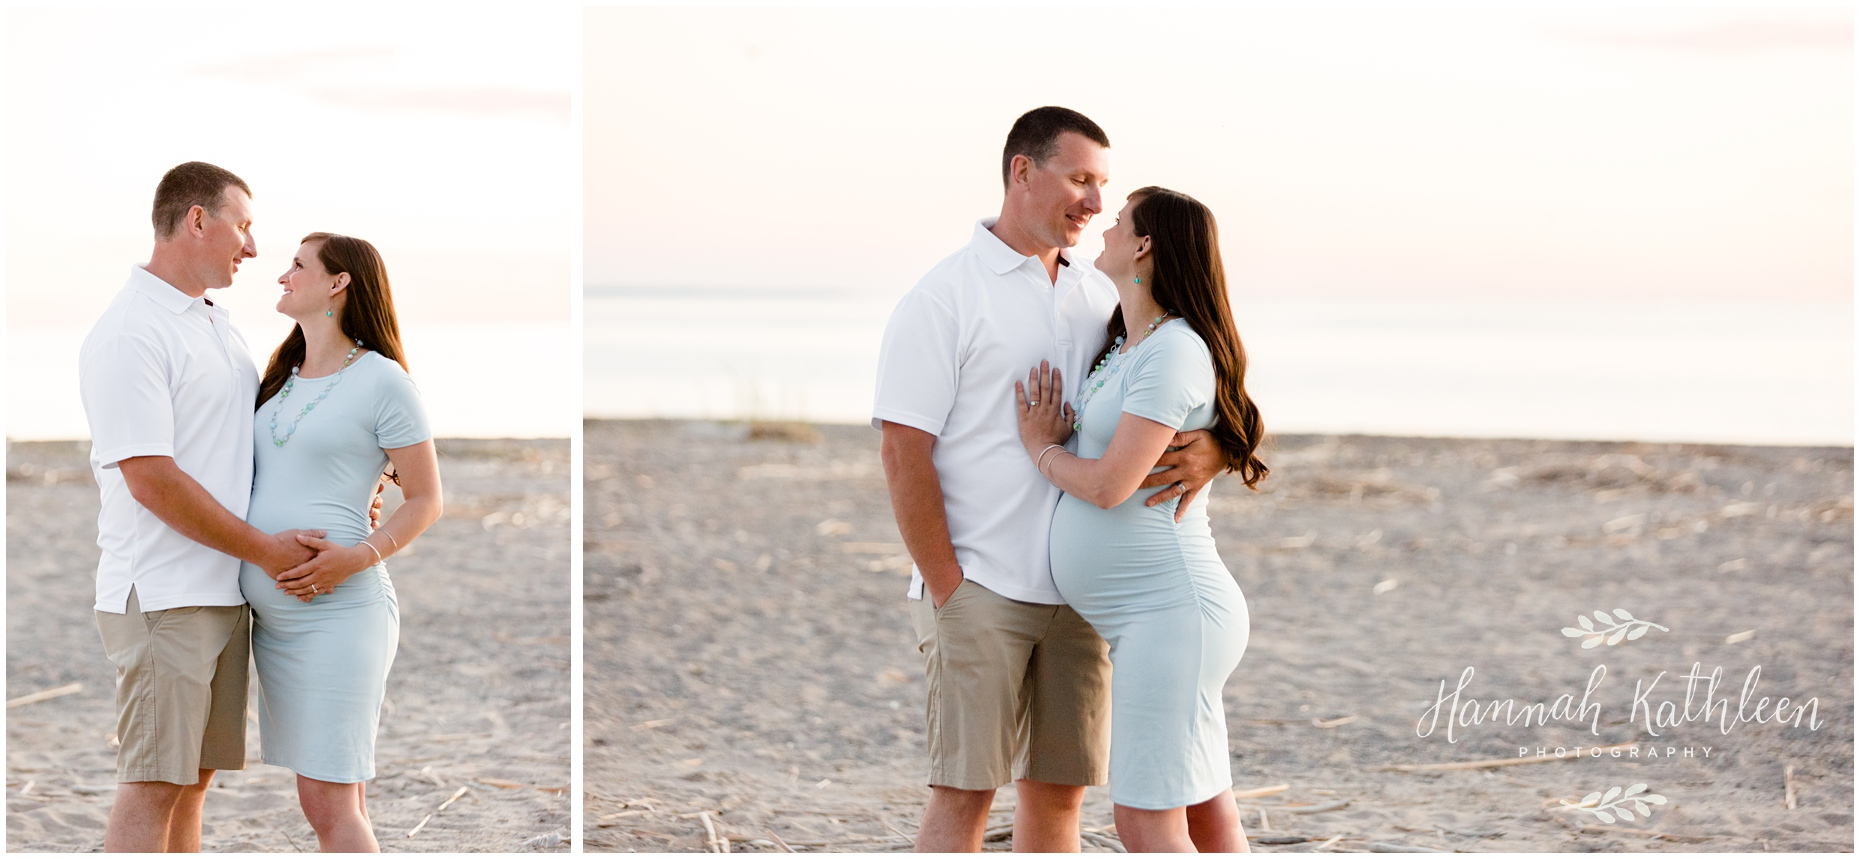 Bob_Krista_Woodlawn_Beach_Hamburg_Maternity_Photography_Buffalo_NY